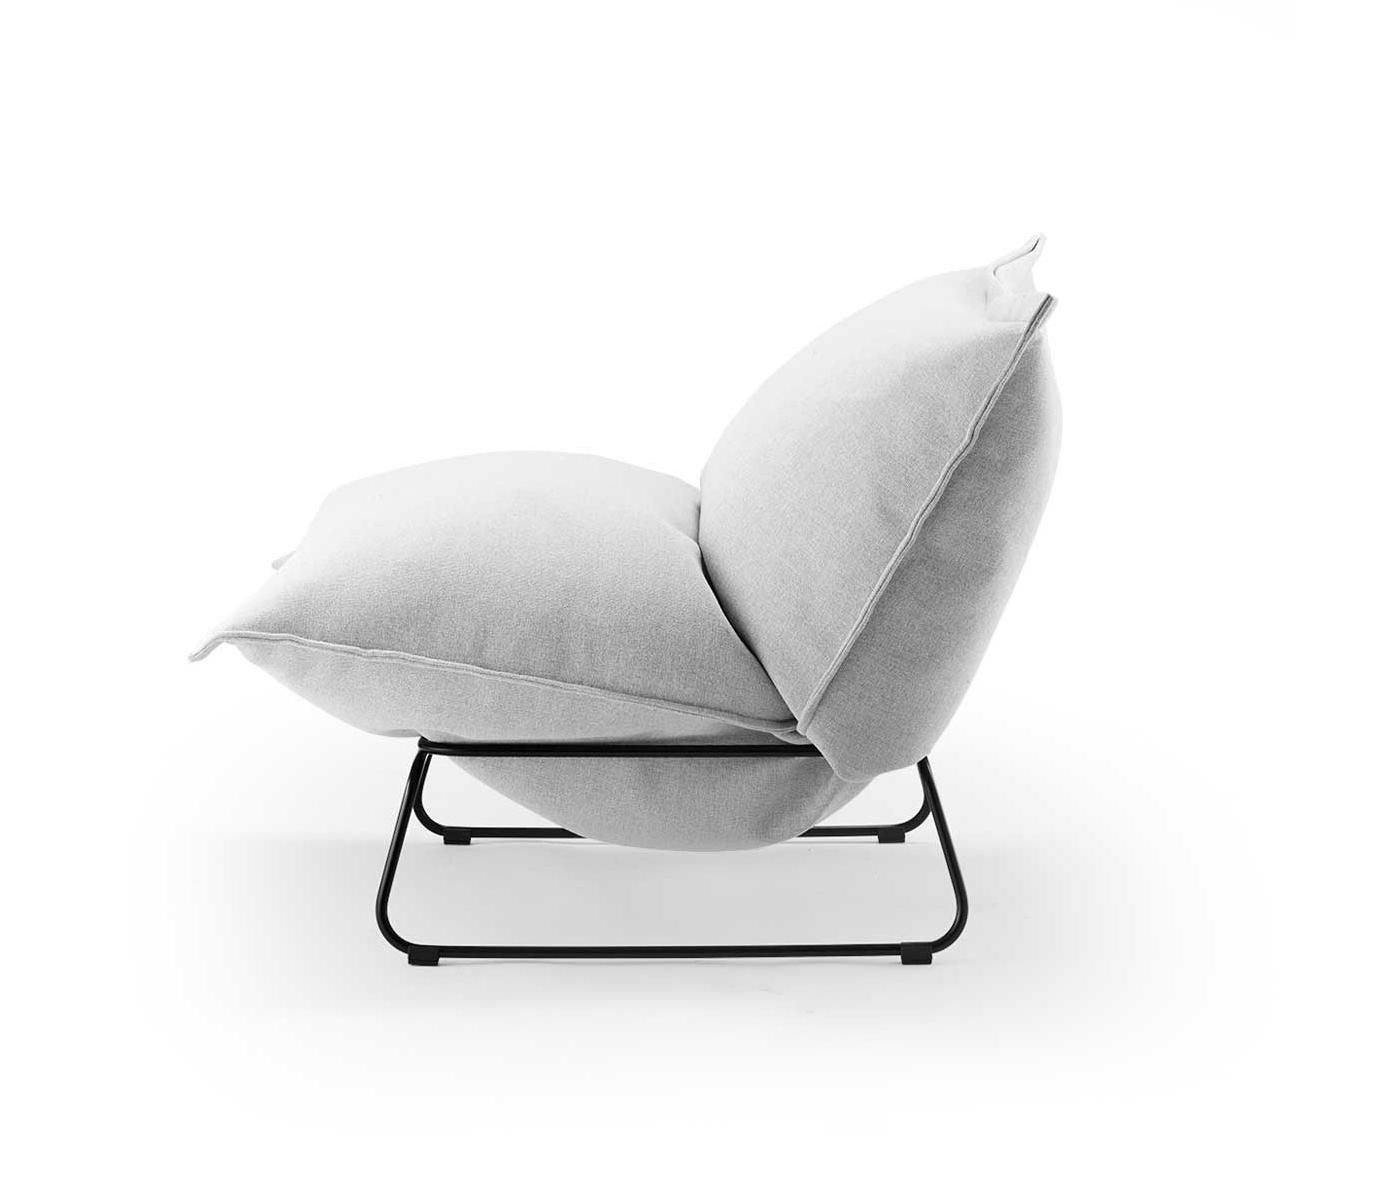 Baron Designer Lounge Chairs From Rosconi All